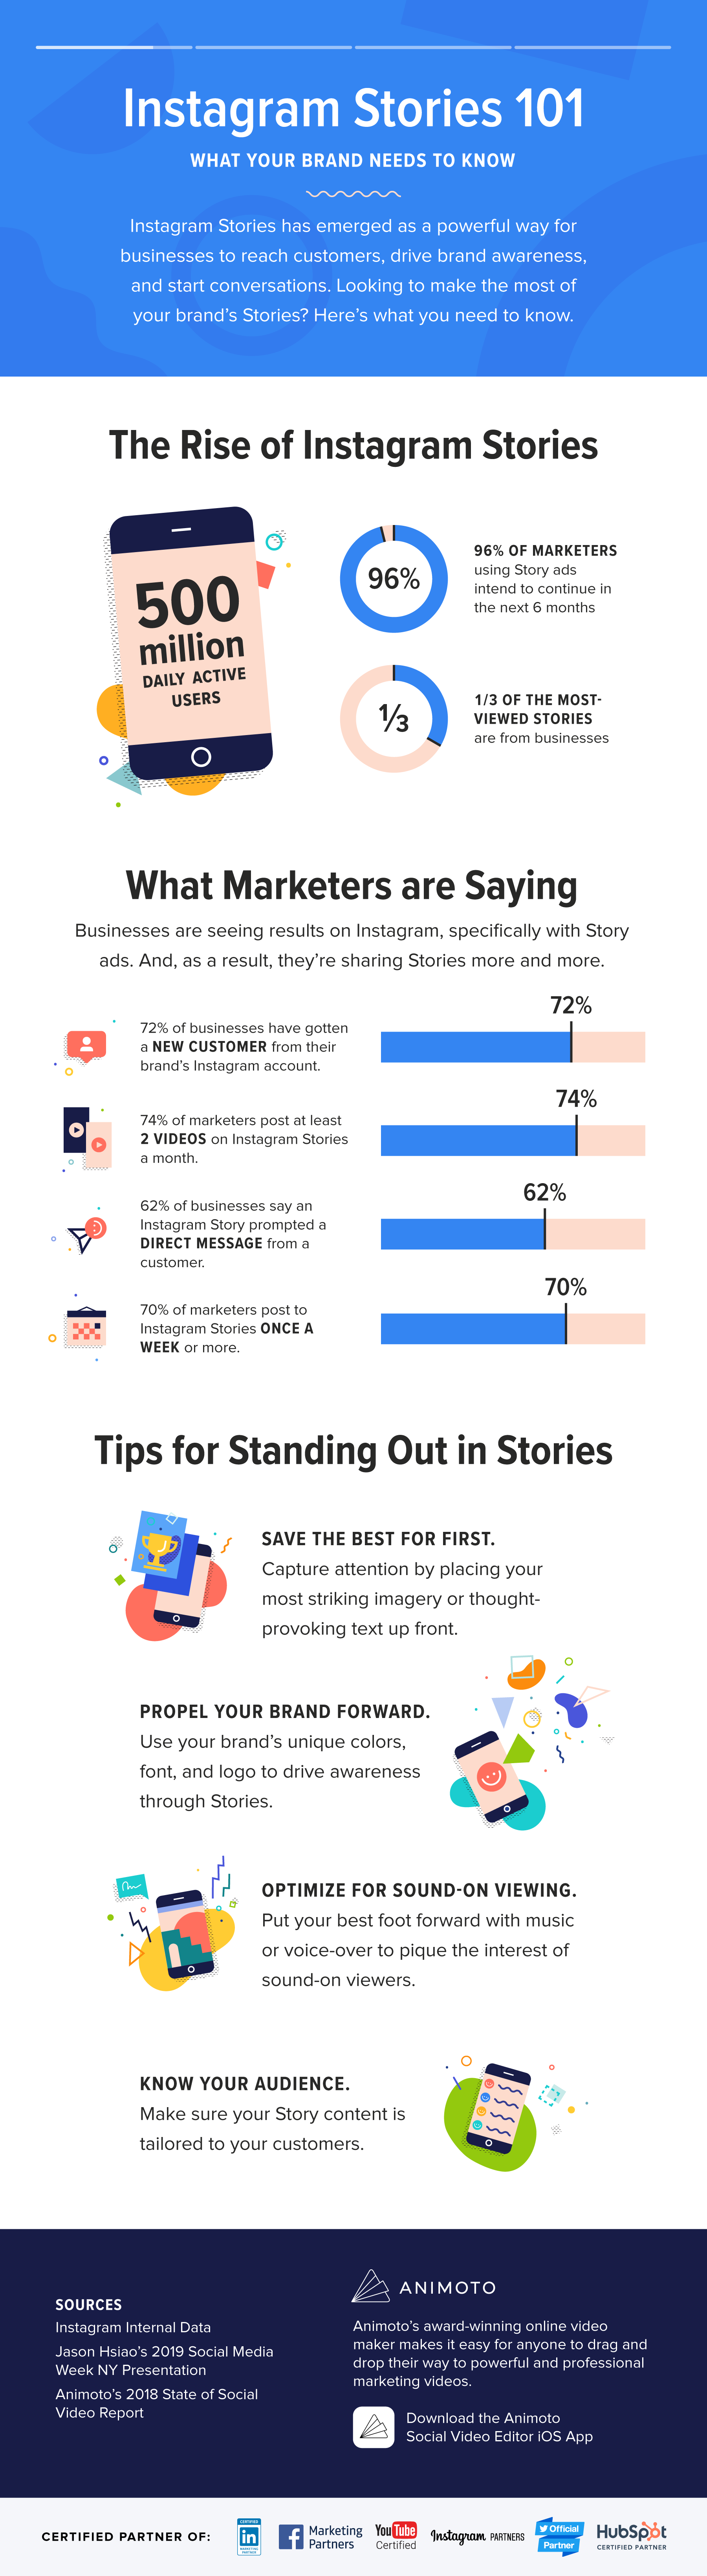 How to Differentiate Your Brand On Instagram Stories [Infographic]